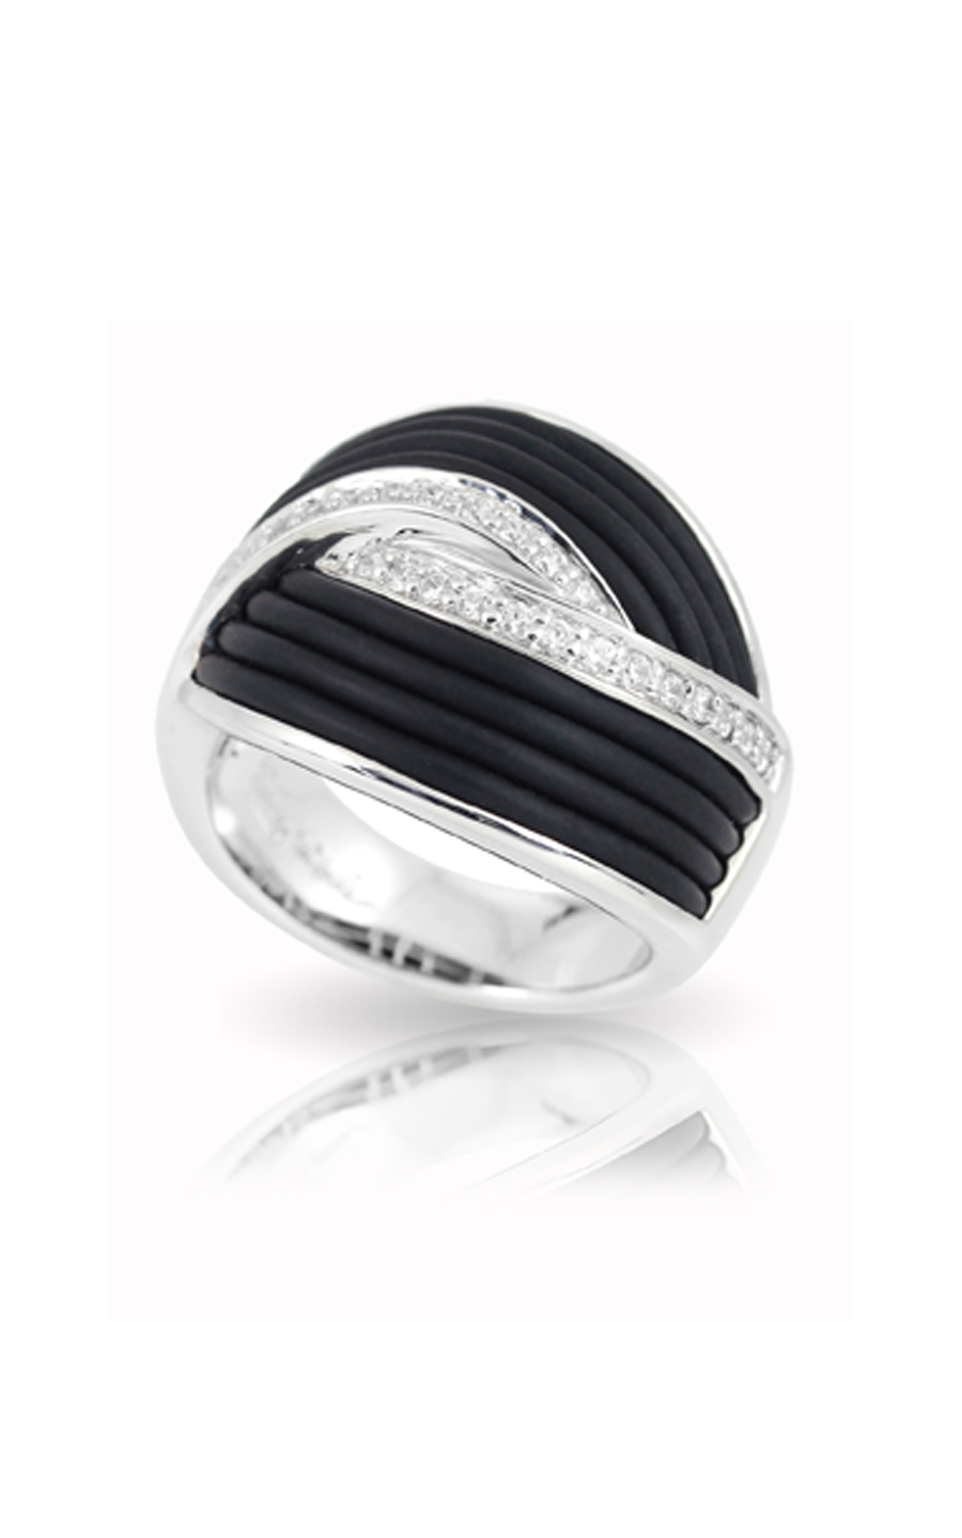 Belle Etoile Eterno Black Ring 01051220501-5 product image